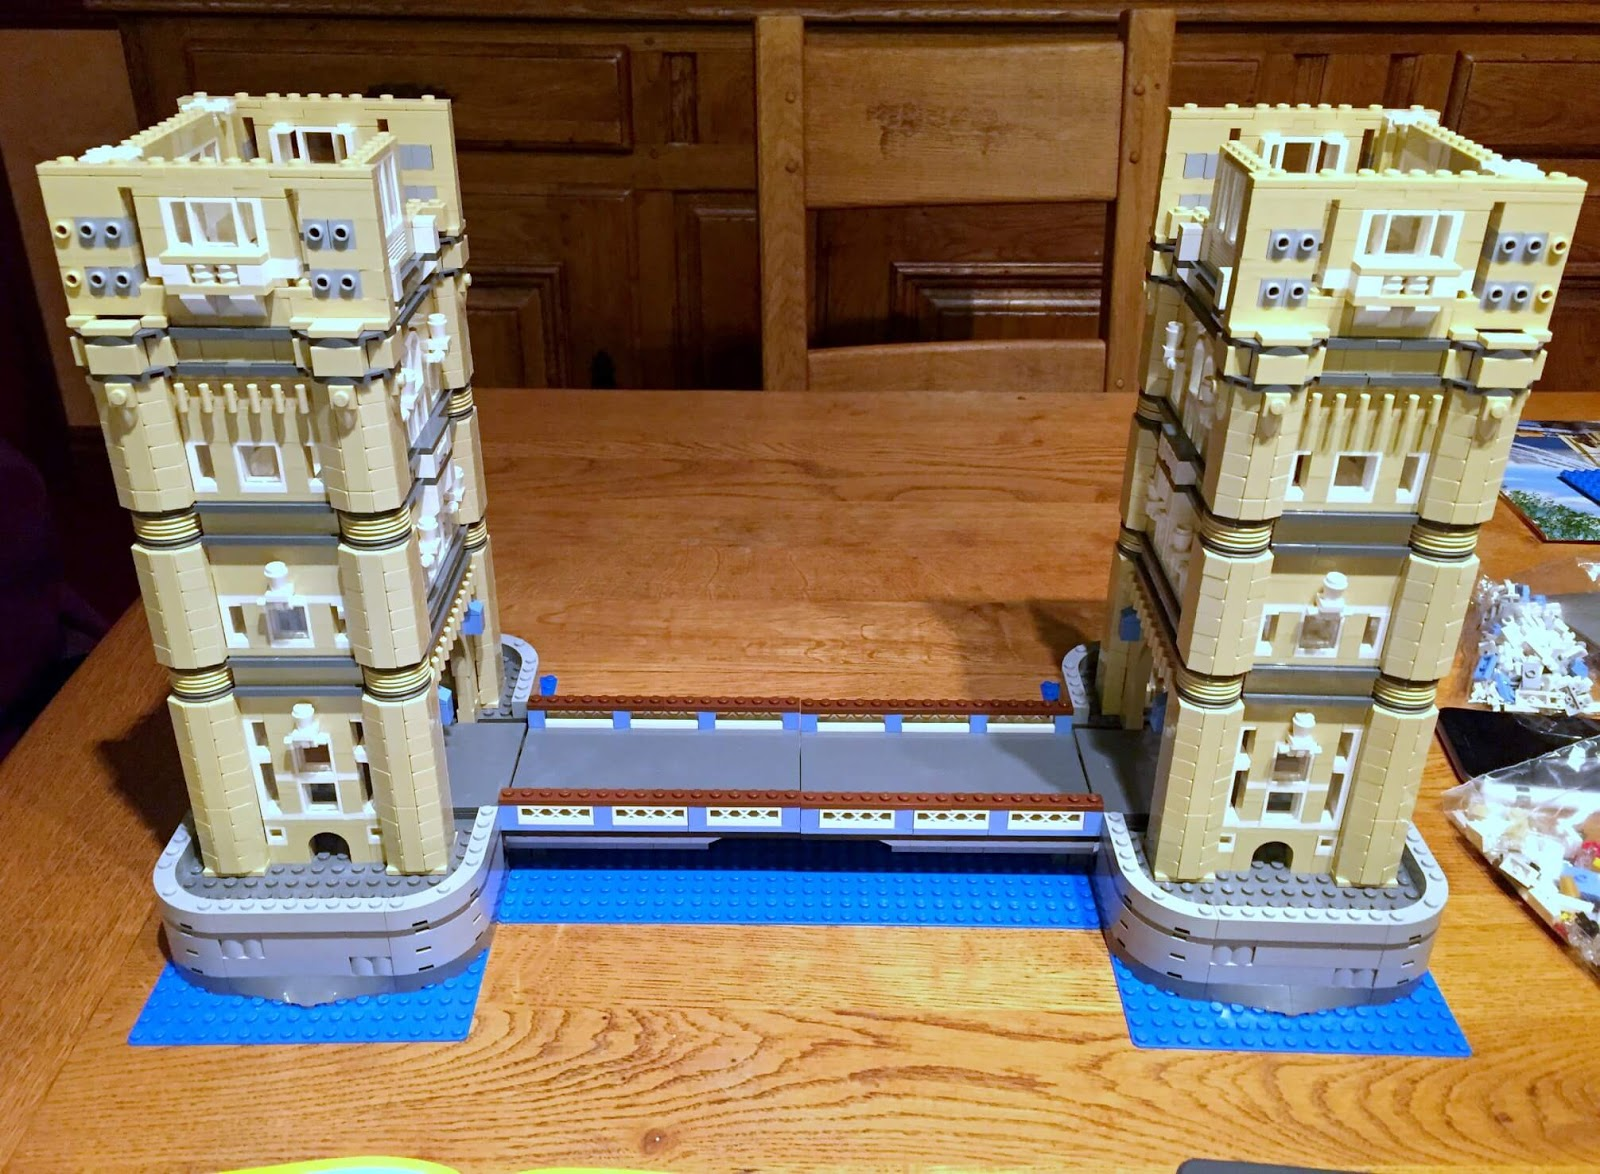 Building Lego Tower Bridge 10214 | Connecting the towers with the bridge.